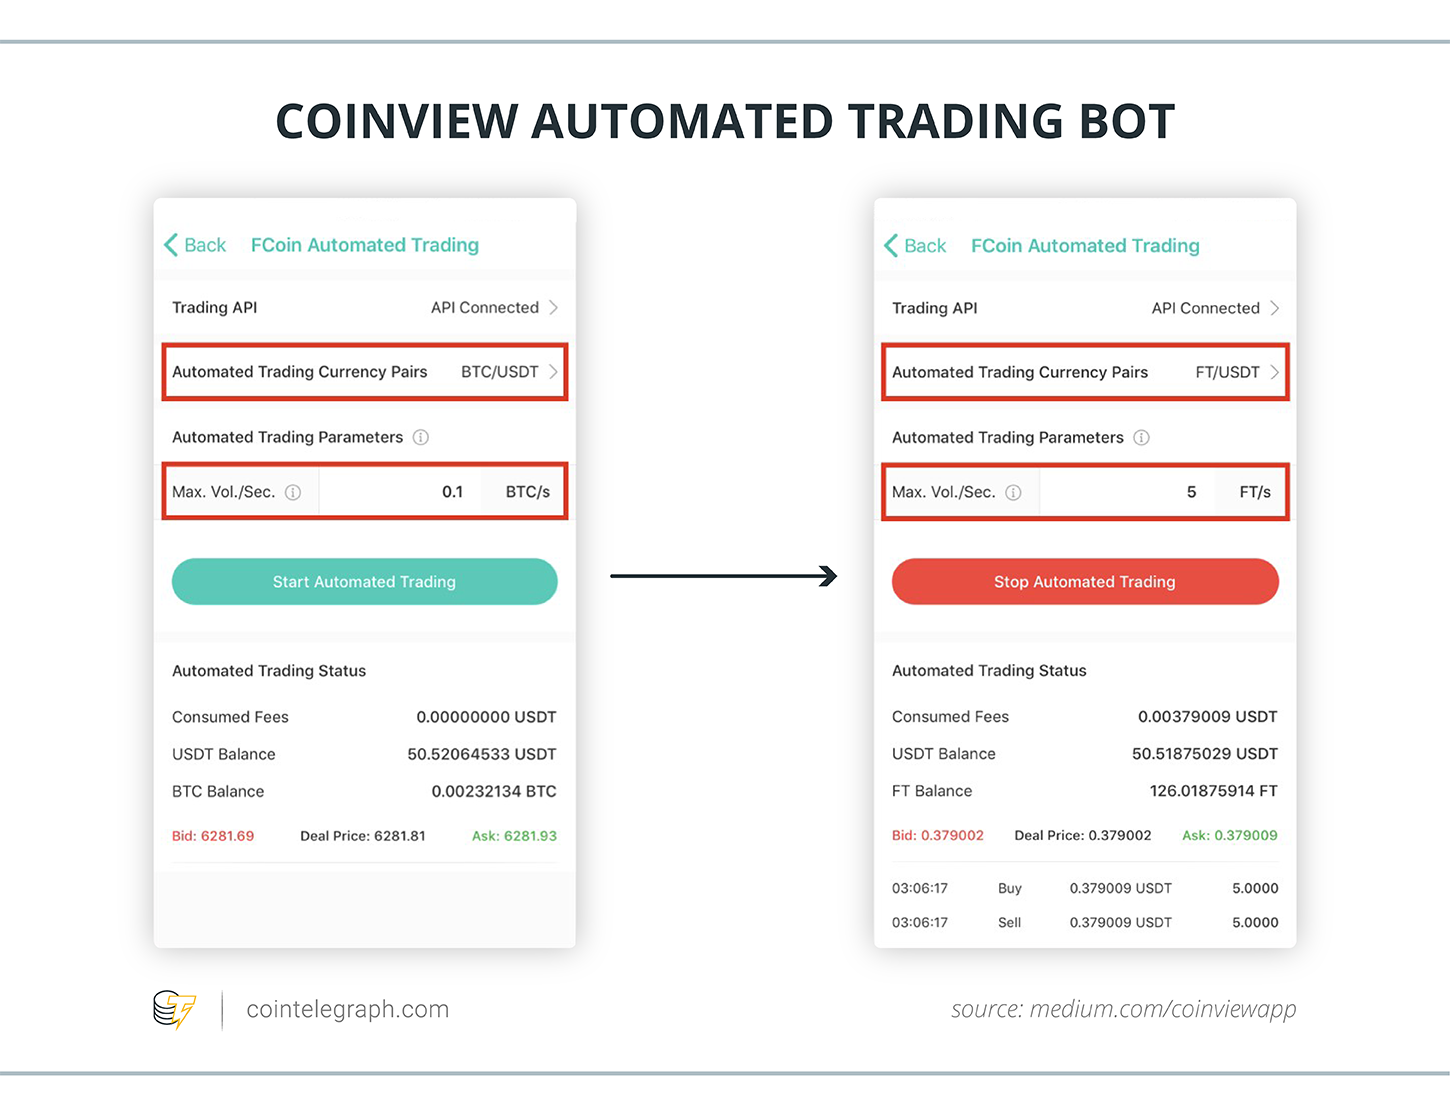 COINVIEW AUTOMATED TRADING BOT